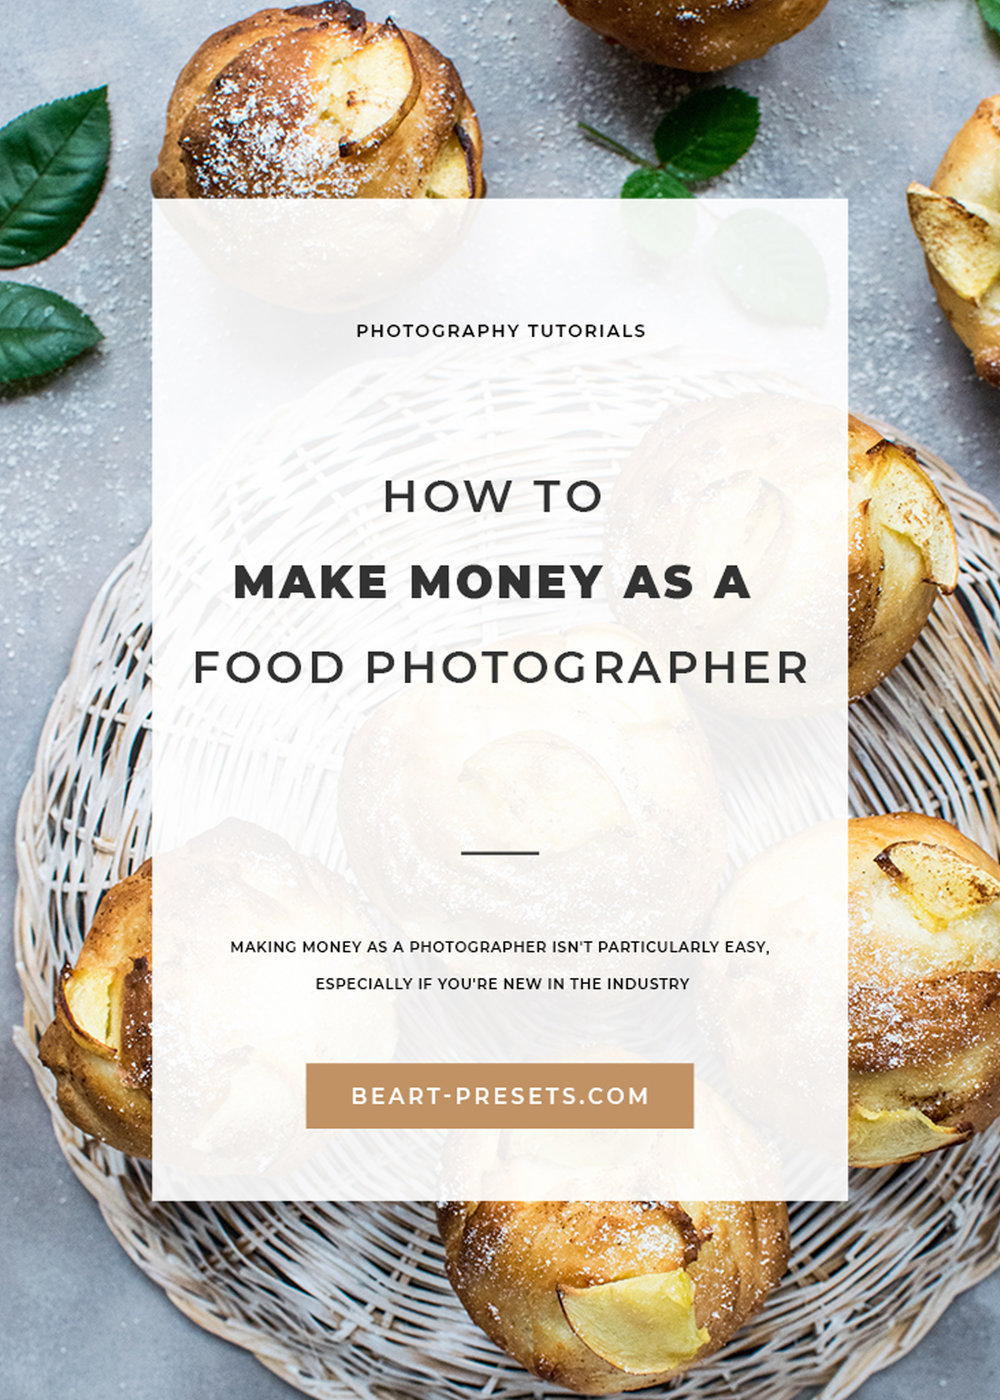 HOW TO  MAKE MONEY AS A FOOD PHOTOGRAPHER